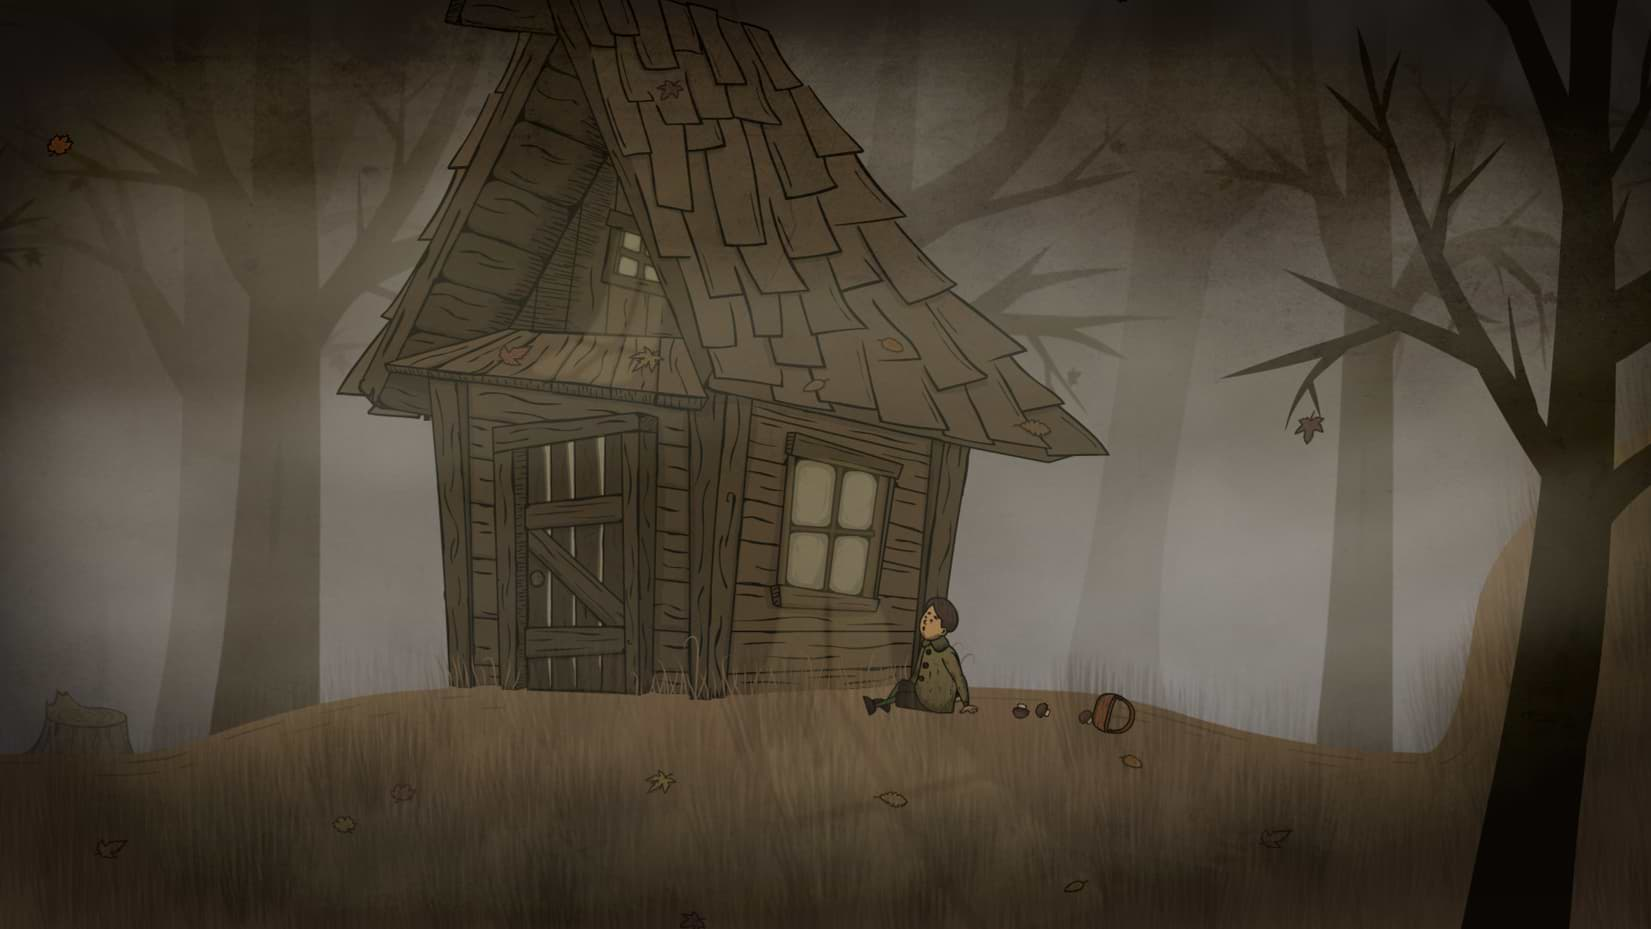 Creepy Tale on the Switch this week